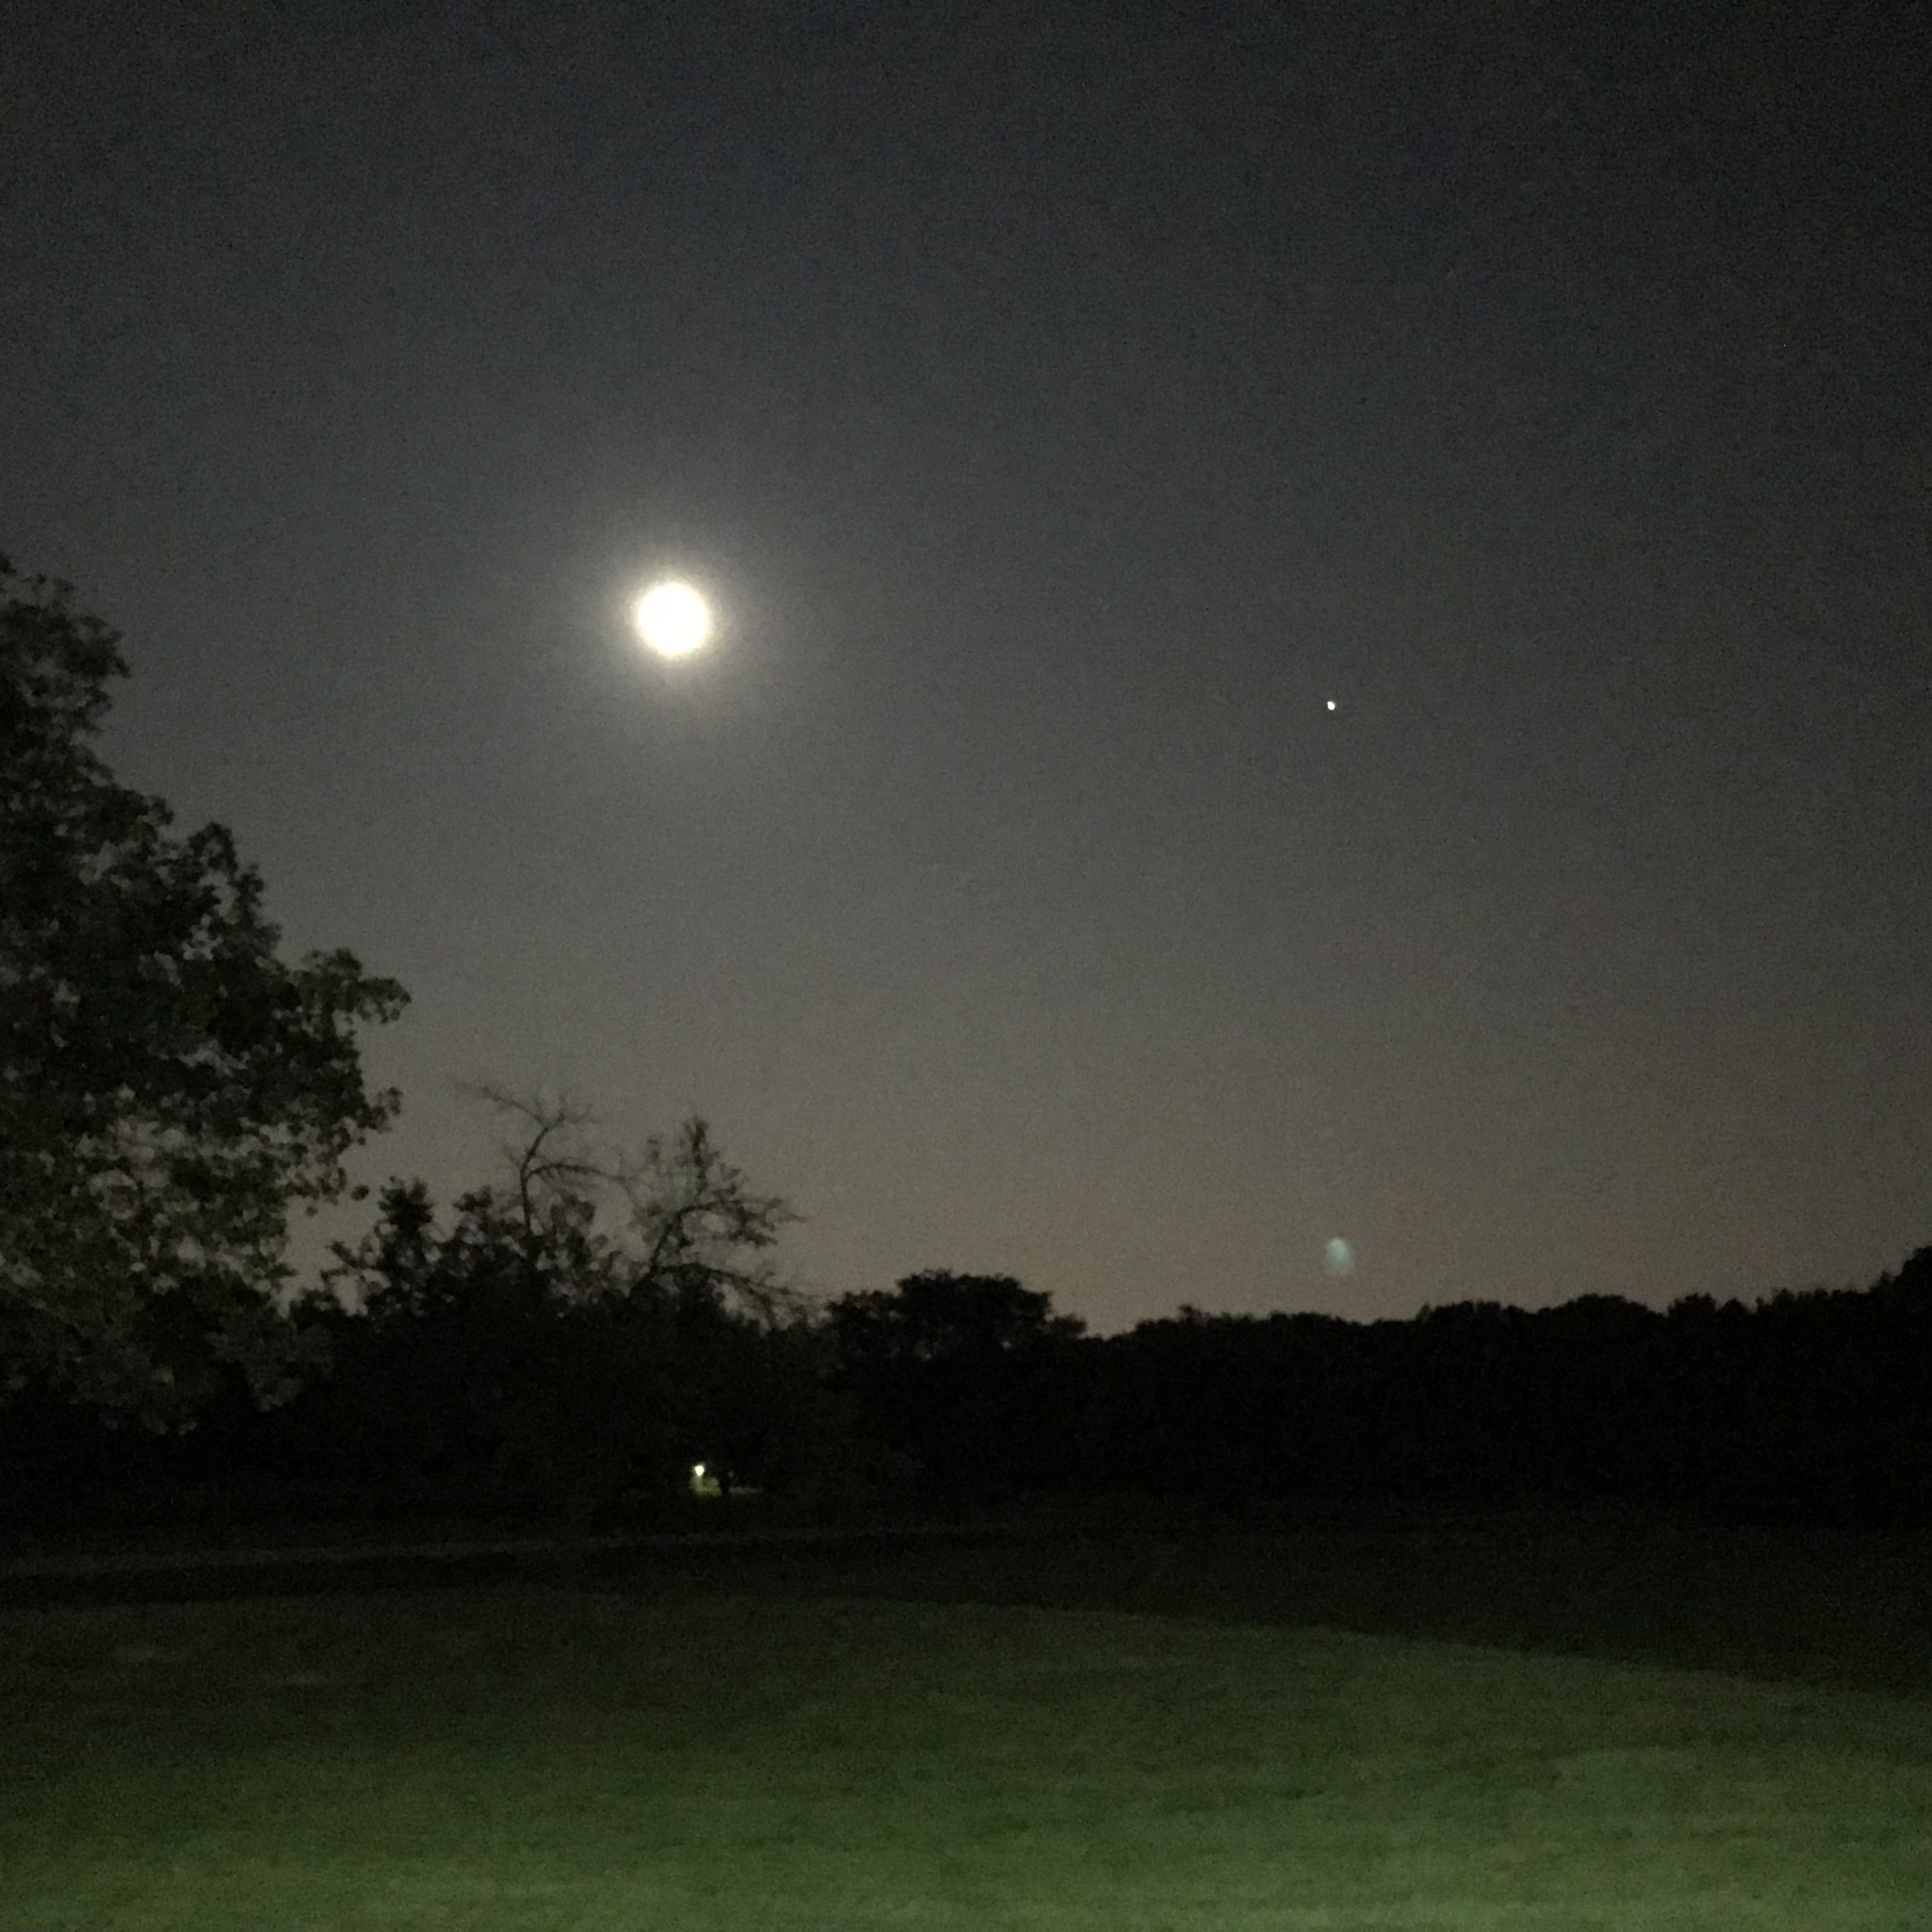 The photographer captured the moon and Mars from the Fermilab Fire Station on July 28 at 11:30 p.m. nature, sky, moon, Mars, landscape Photo: Derek Piec